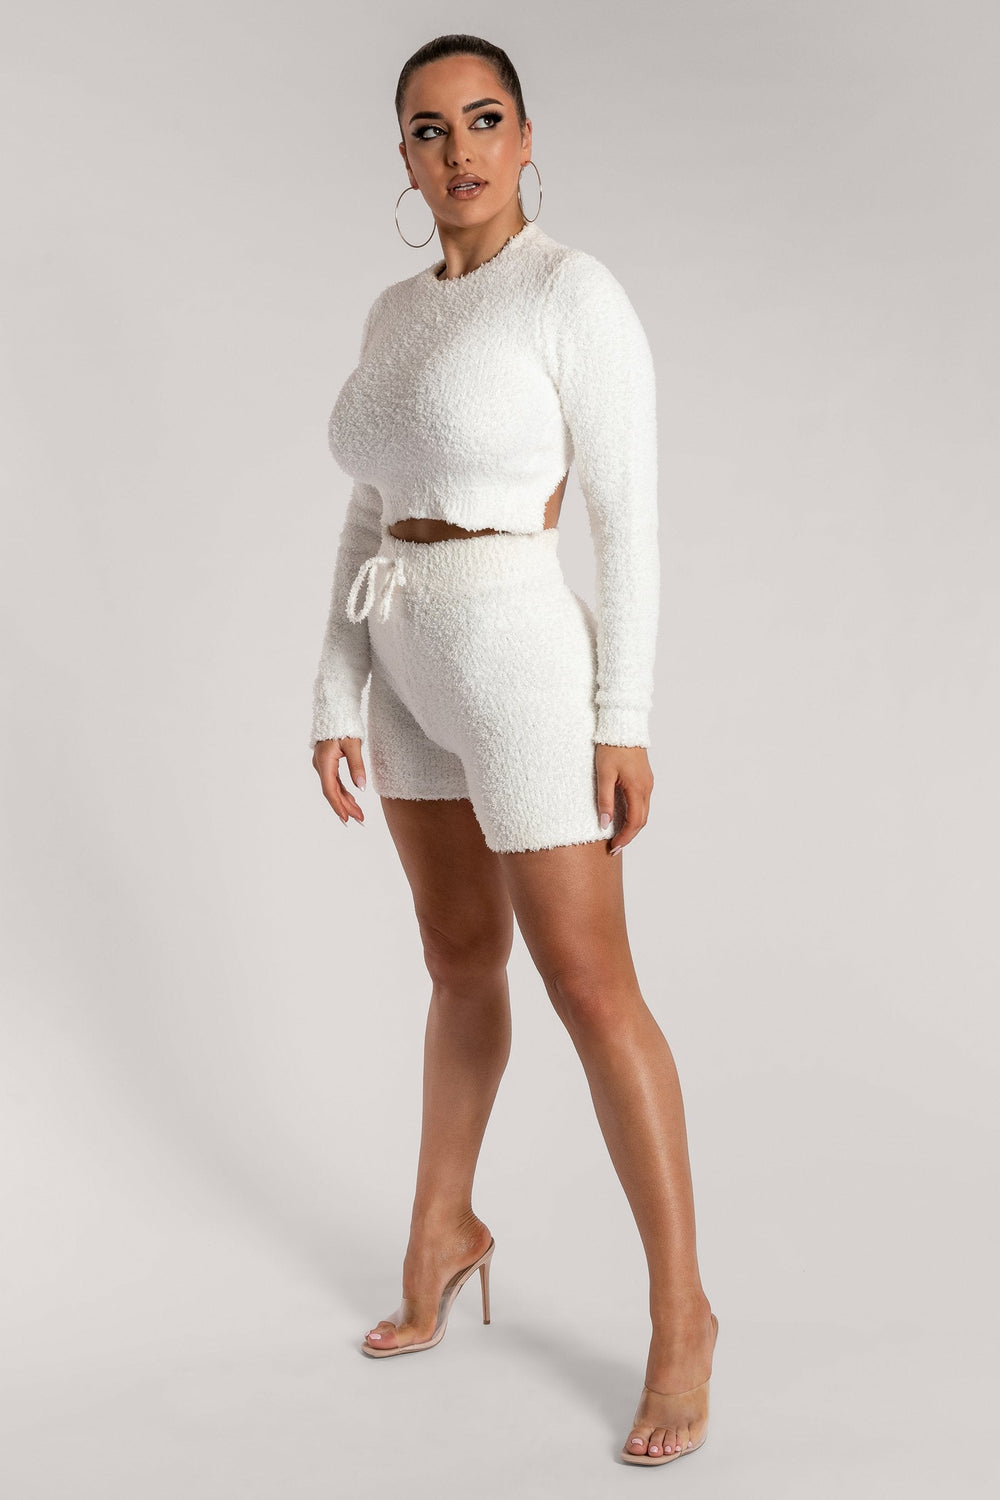 Charlotte Popcorn Long Sleeve Cut Out Back Crop Top - Cream - MESHKI ?id=15955344457803